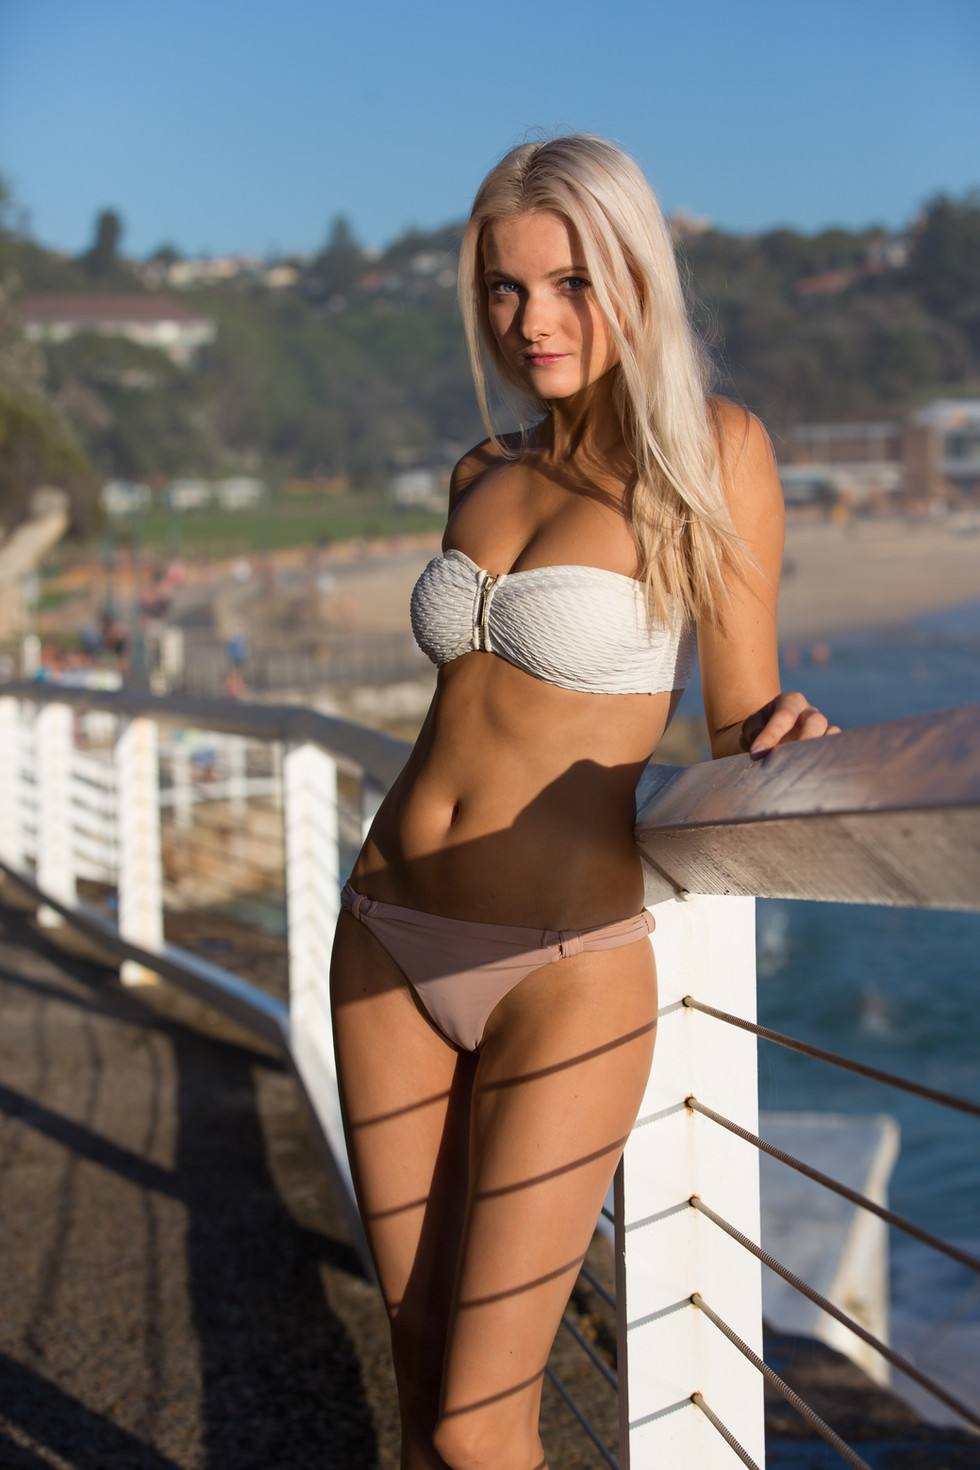 Kriste__by_CoogeePhotography-323415.jpg